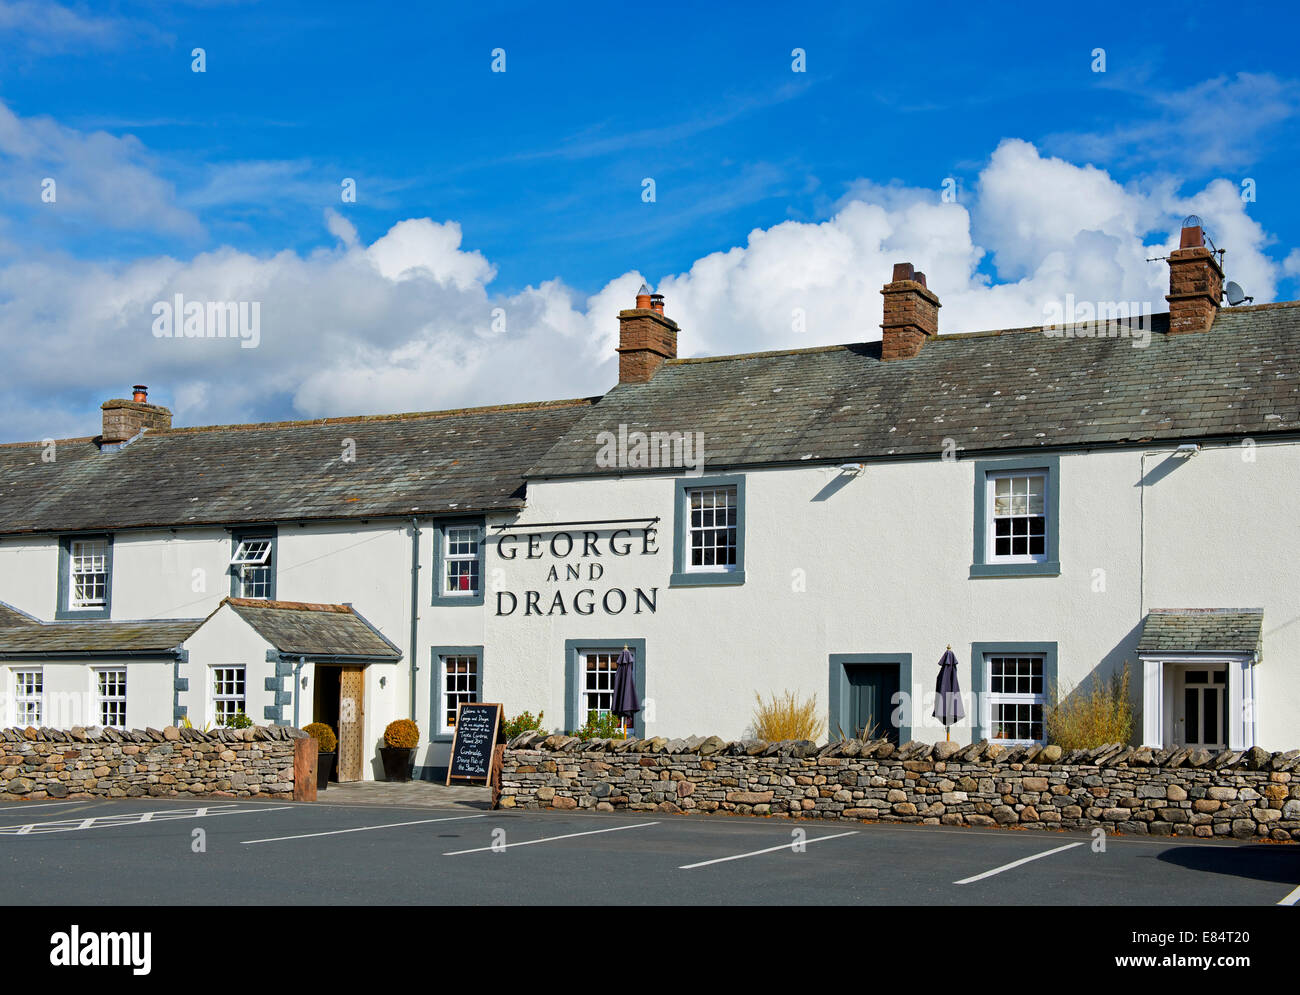 The George and Dragon pub in Clifton, Cumbria, England UK - Stock Image